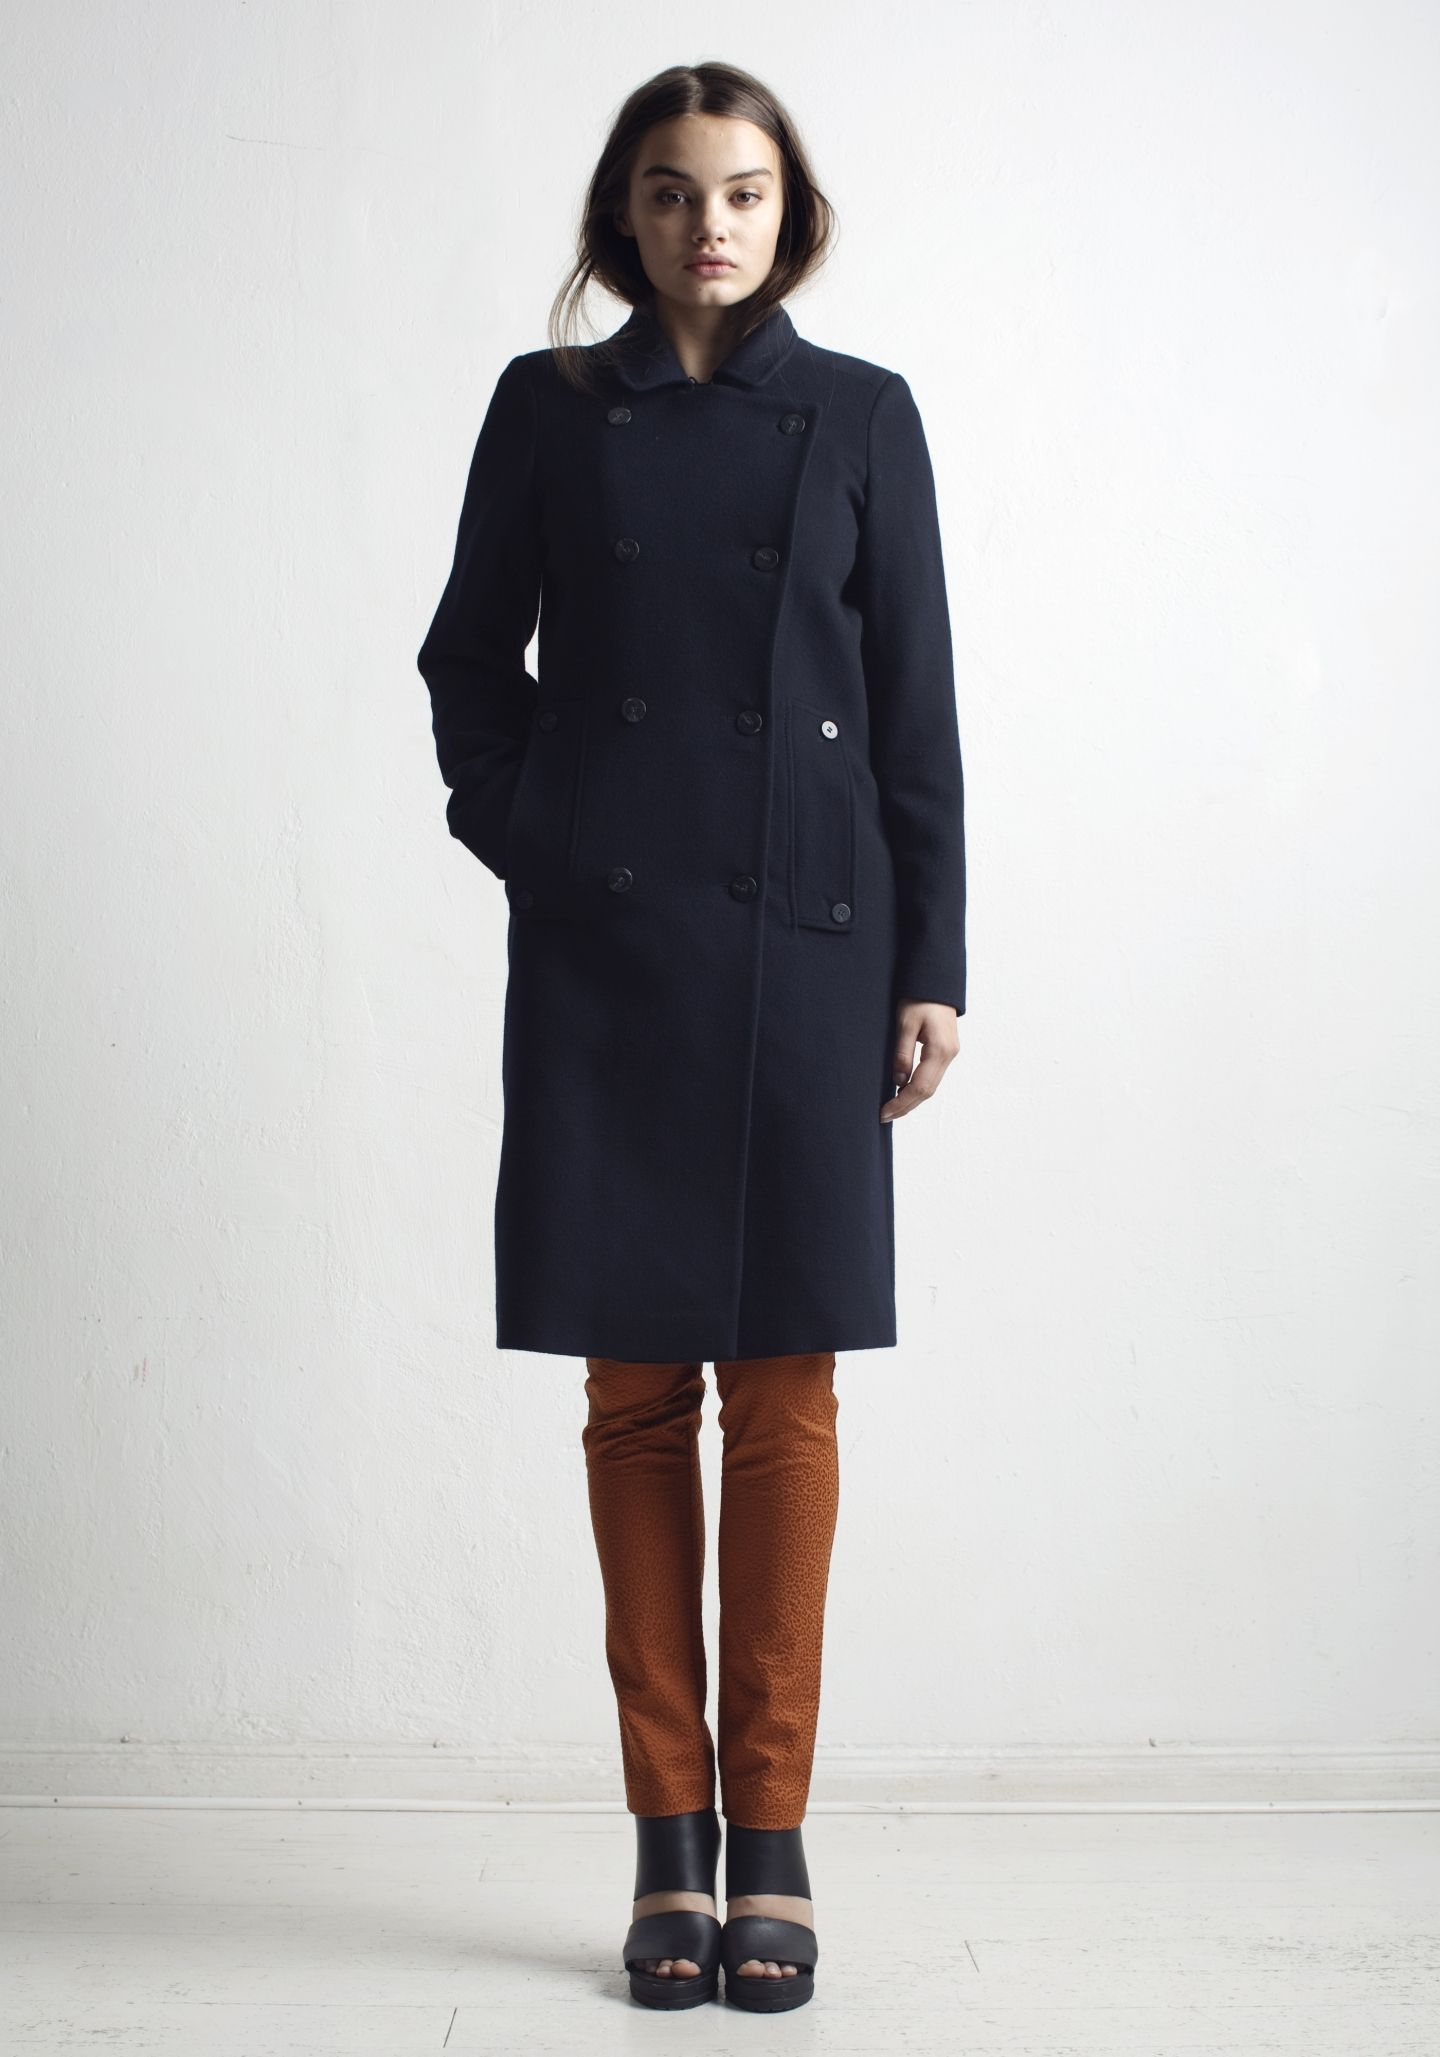 COAT LITTLE LUXURY OUTDOOR BLACK in the group All items